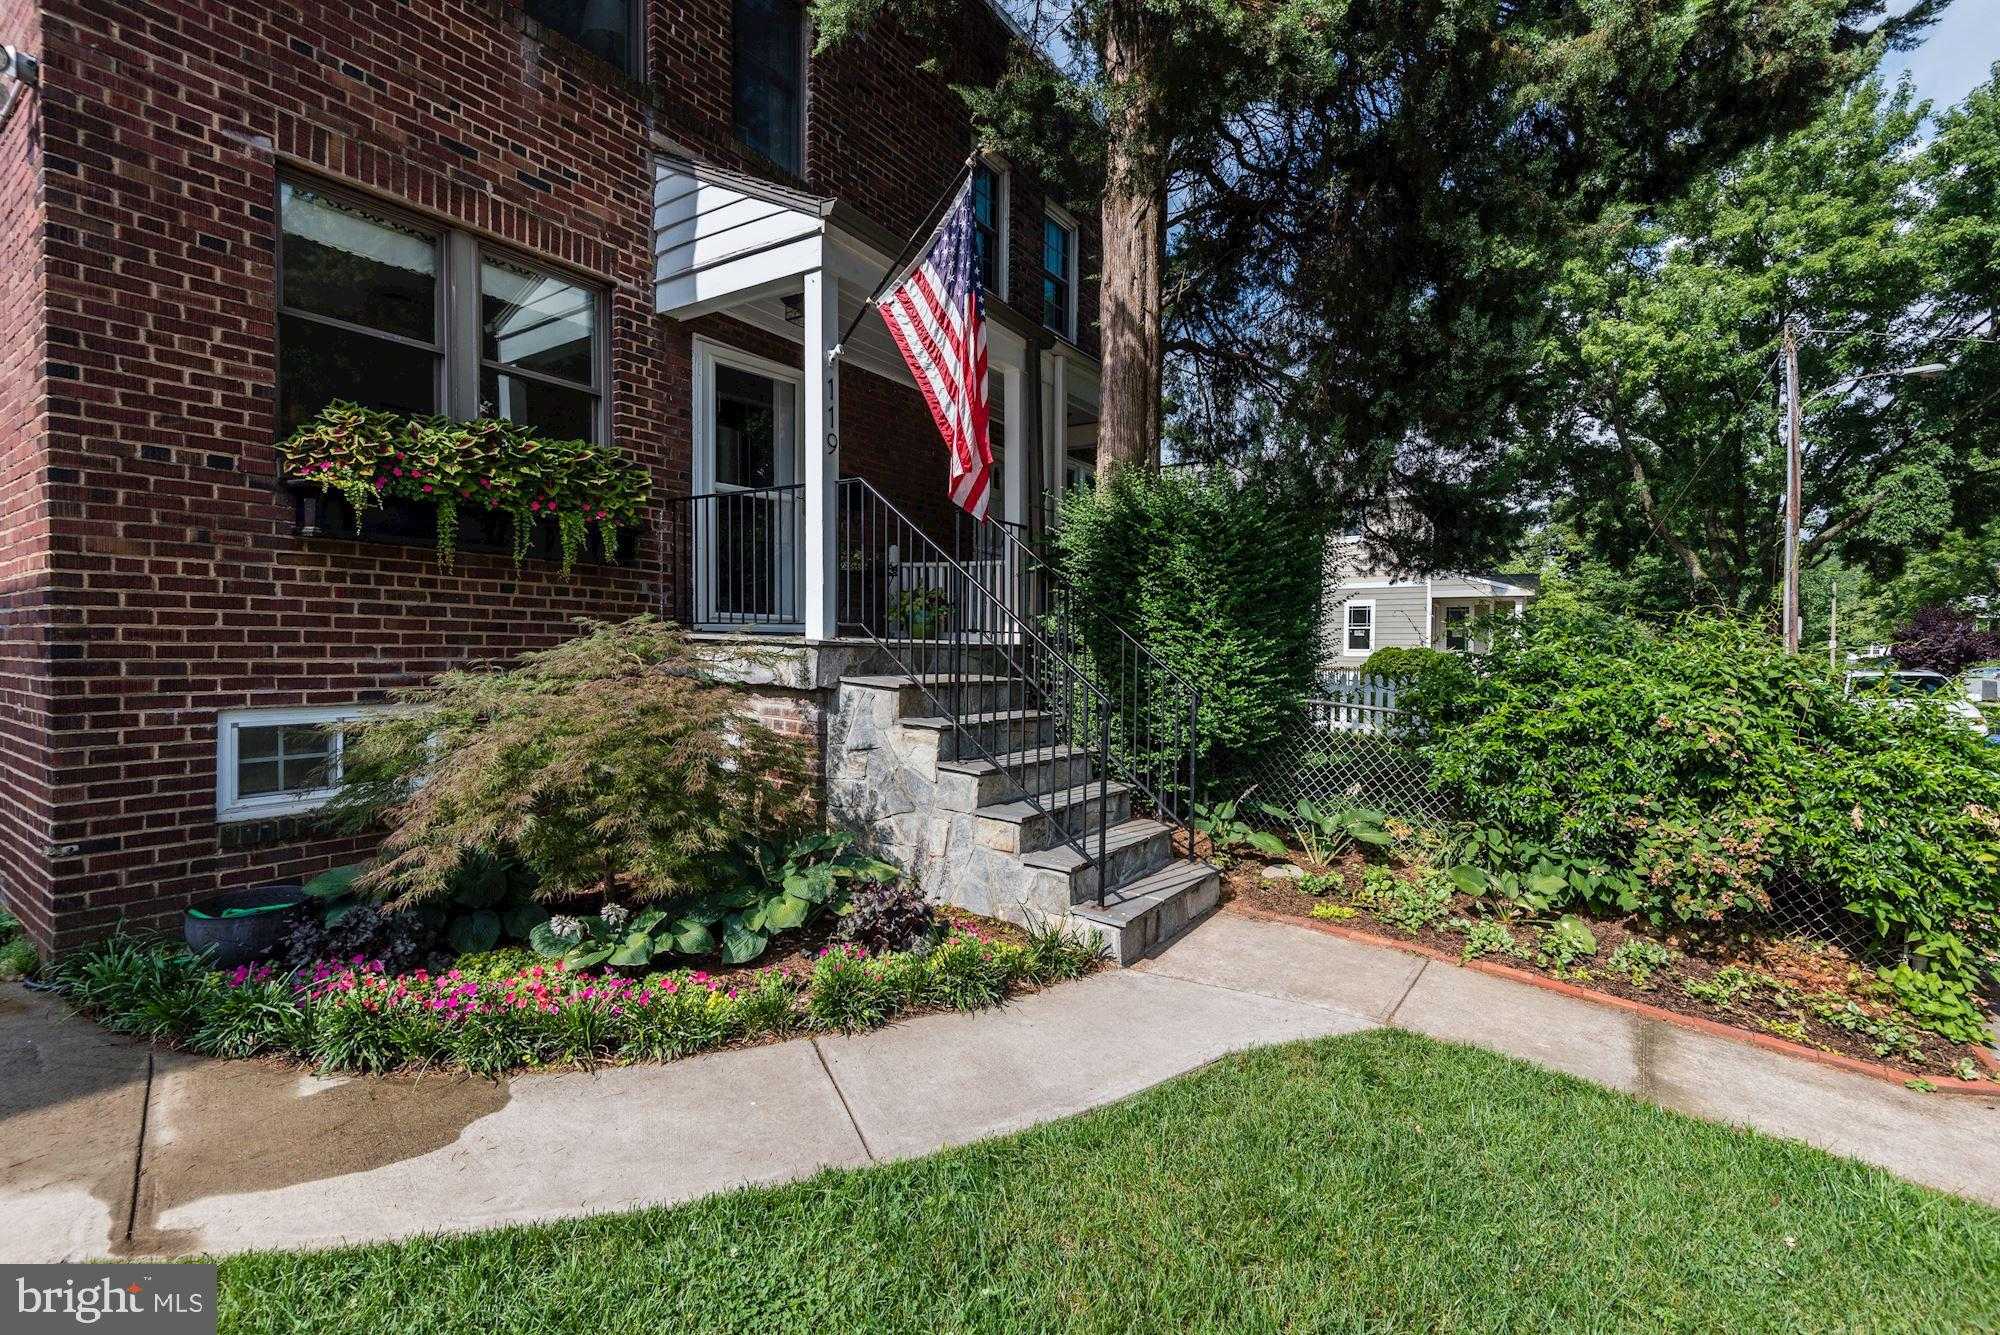 Fully renovated semi-detached townhouse in Rosemont Park only blocks to Braddock Metro! Approx 1800 sqft of living space on a large, fully fenced 3400+ sqft lot with driveway for 2 to 3 cars. Open floor plan drenched in light with breakfast room/family room bump out. Updated kitchen w/ island/breakfast bar. White shaker style cabinets, granite tops and stainless steel apps. Double pane windows, hardwood floors & recessed lighthing. Fully finished rec room w/ full bath, front loading washer/dryer, storage closet and storage room/workshop. Easy access to both Braddock & King Metro as well as the VRE Union Station. Only blocks to King St restaurants & shops. Offers, if any, due by noon 12pm on Tuesday the 13th of August.